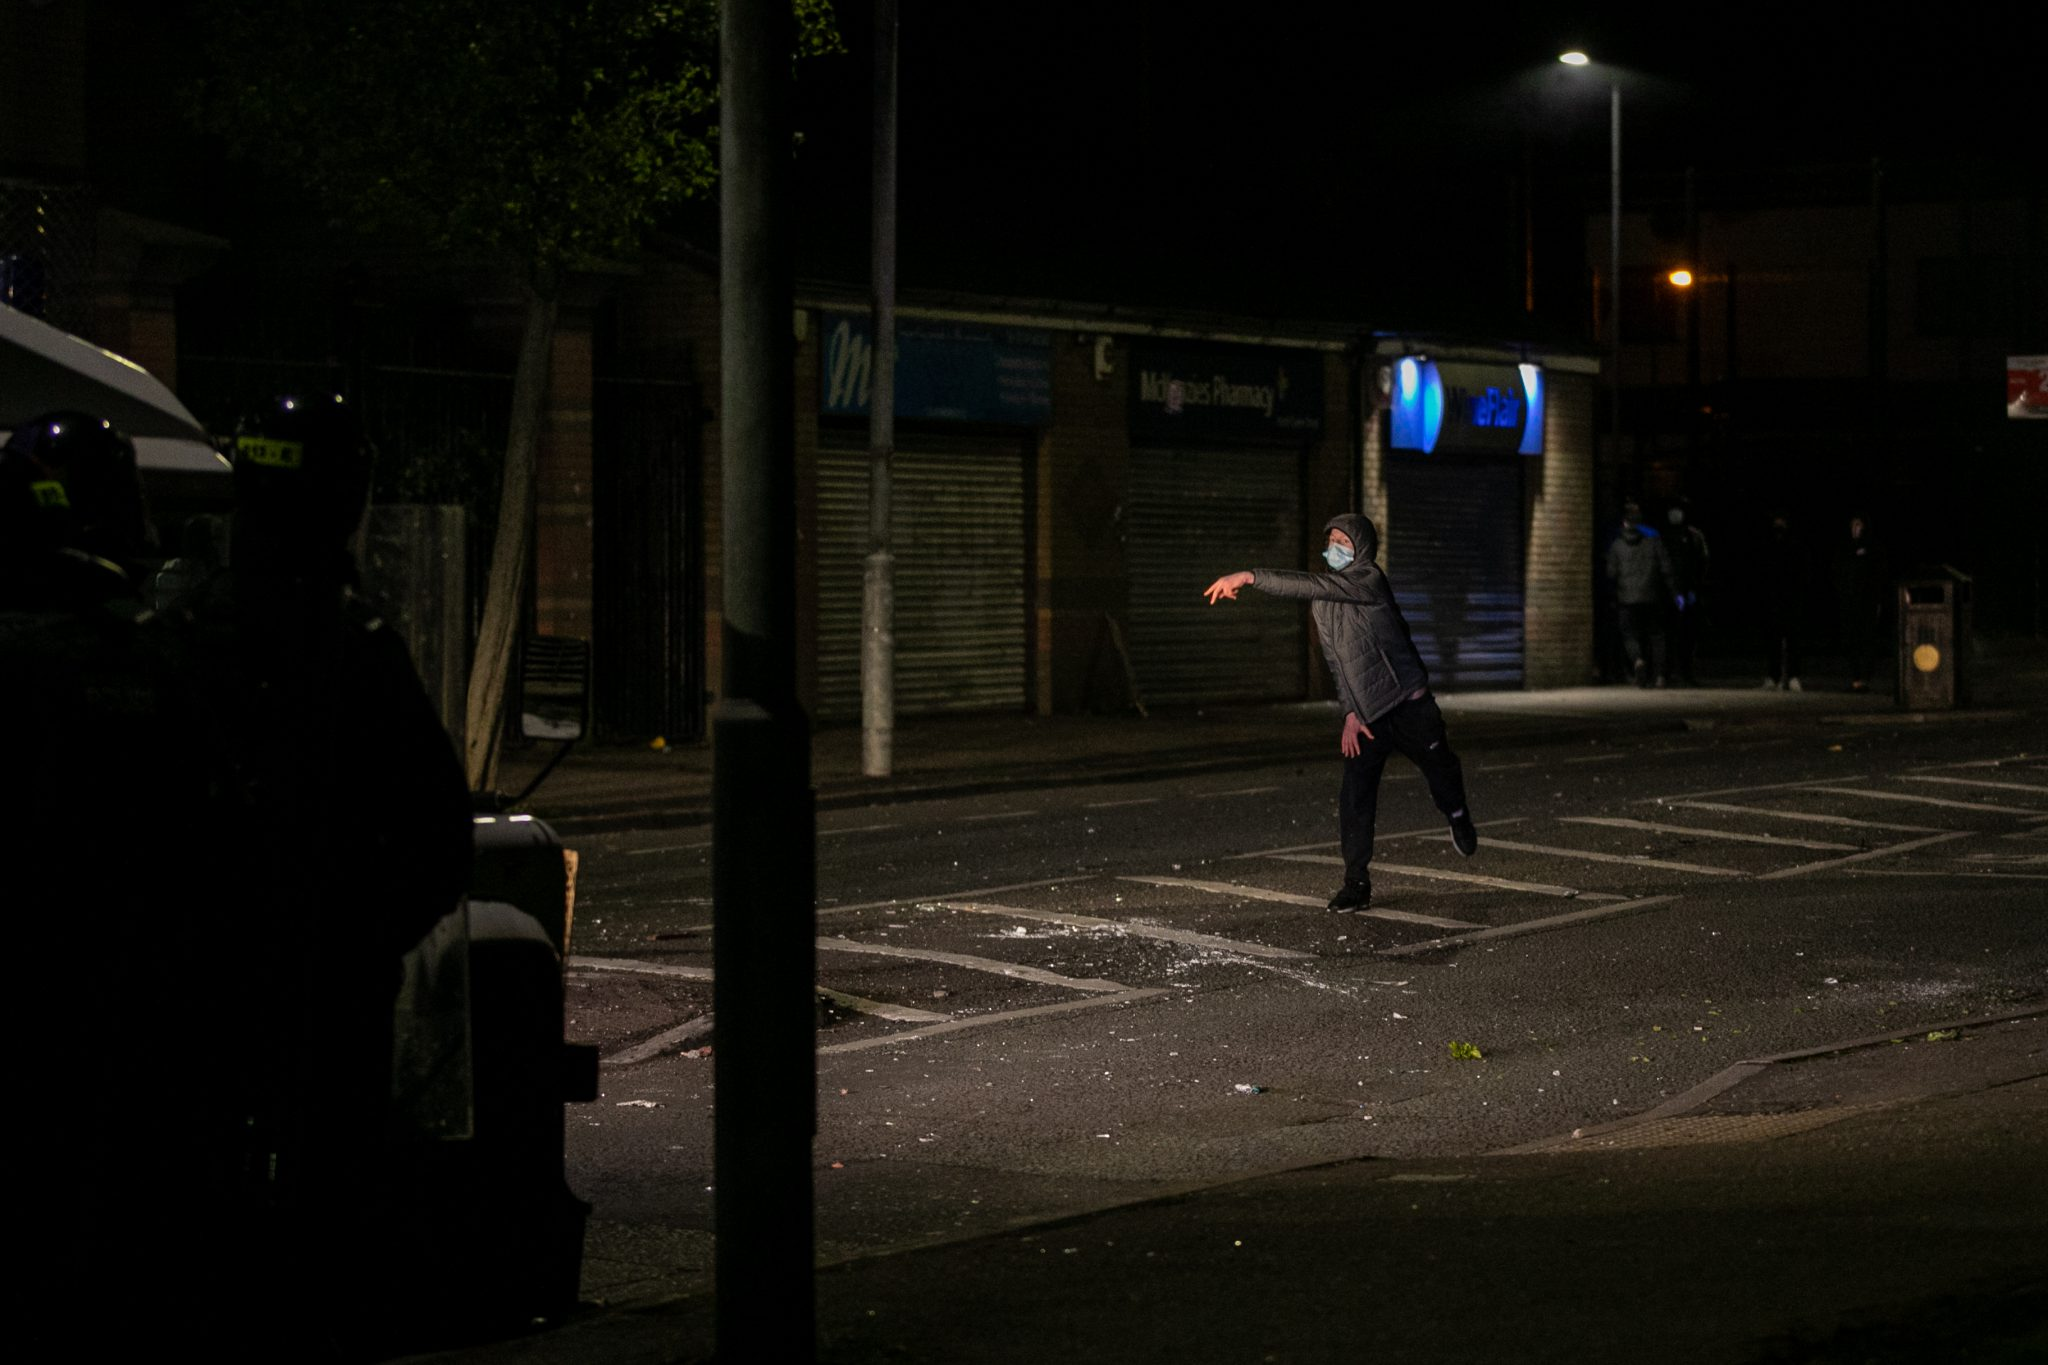 A hooded man throws an unseen item down the road toward police, he wears a medical face mask and the shops behind him are shuttered